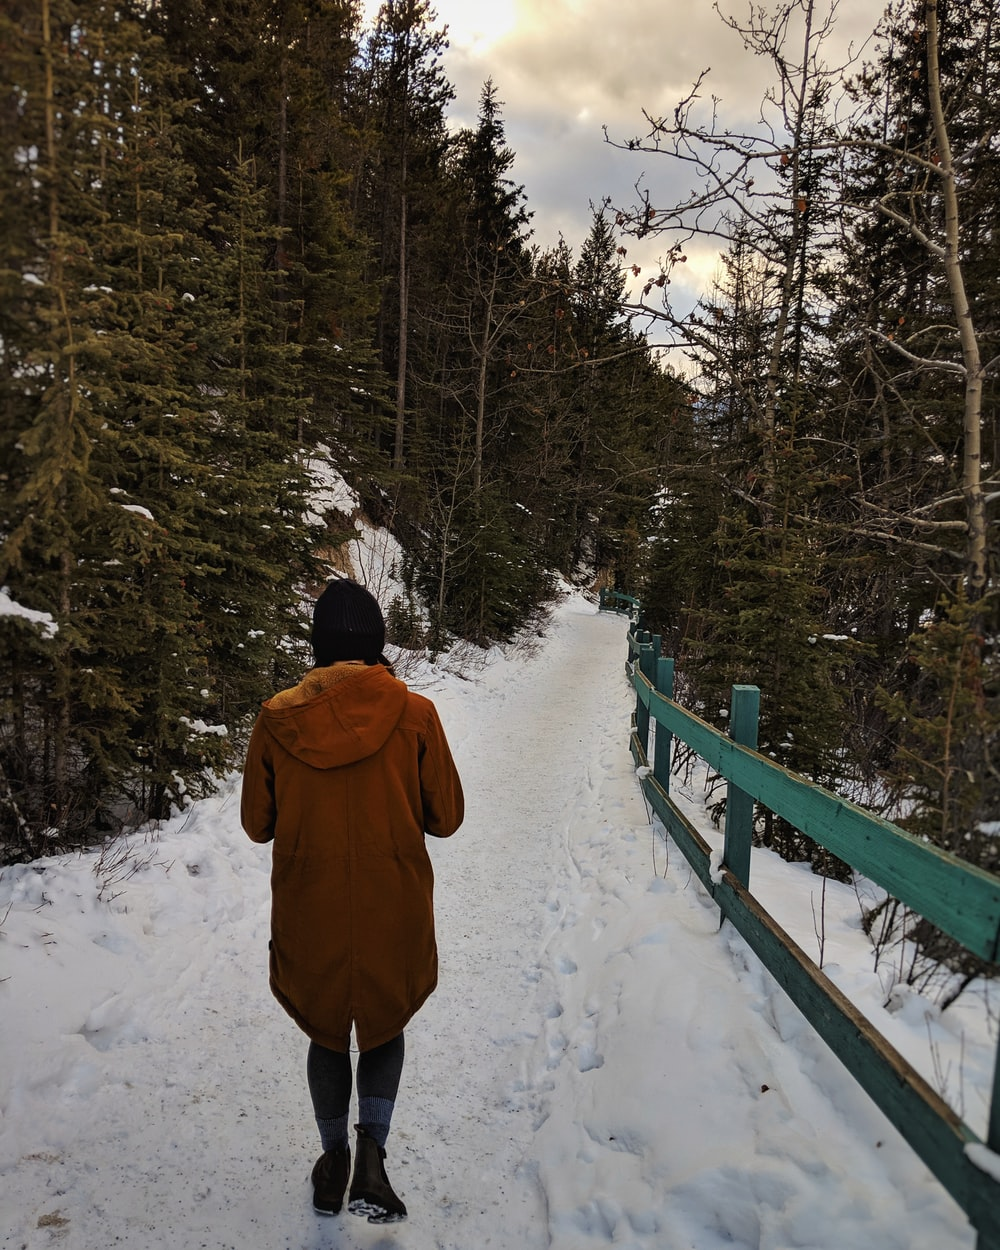 person in a brown coat at a snowy walkway